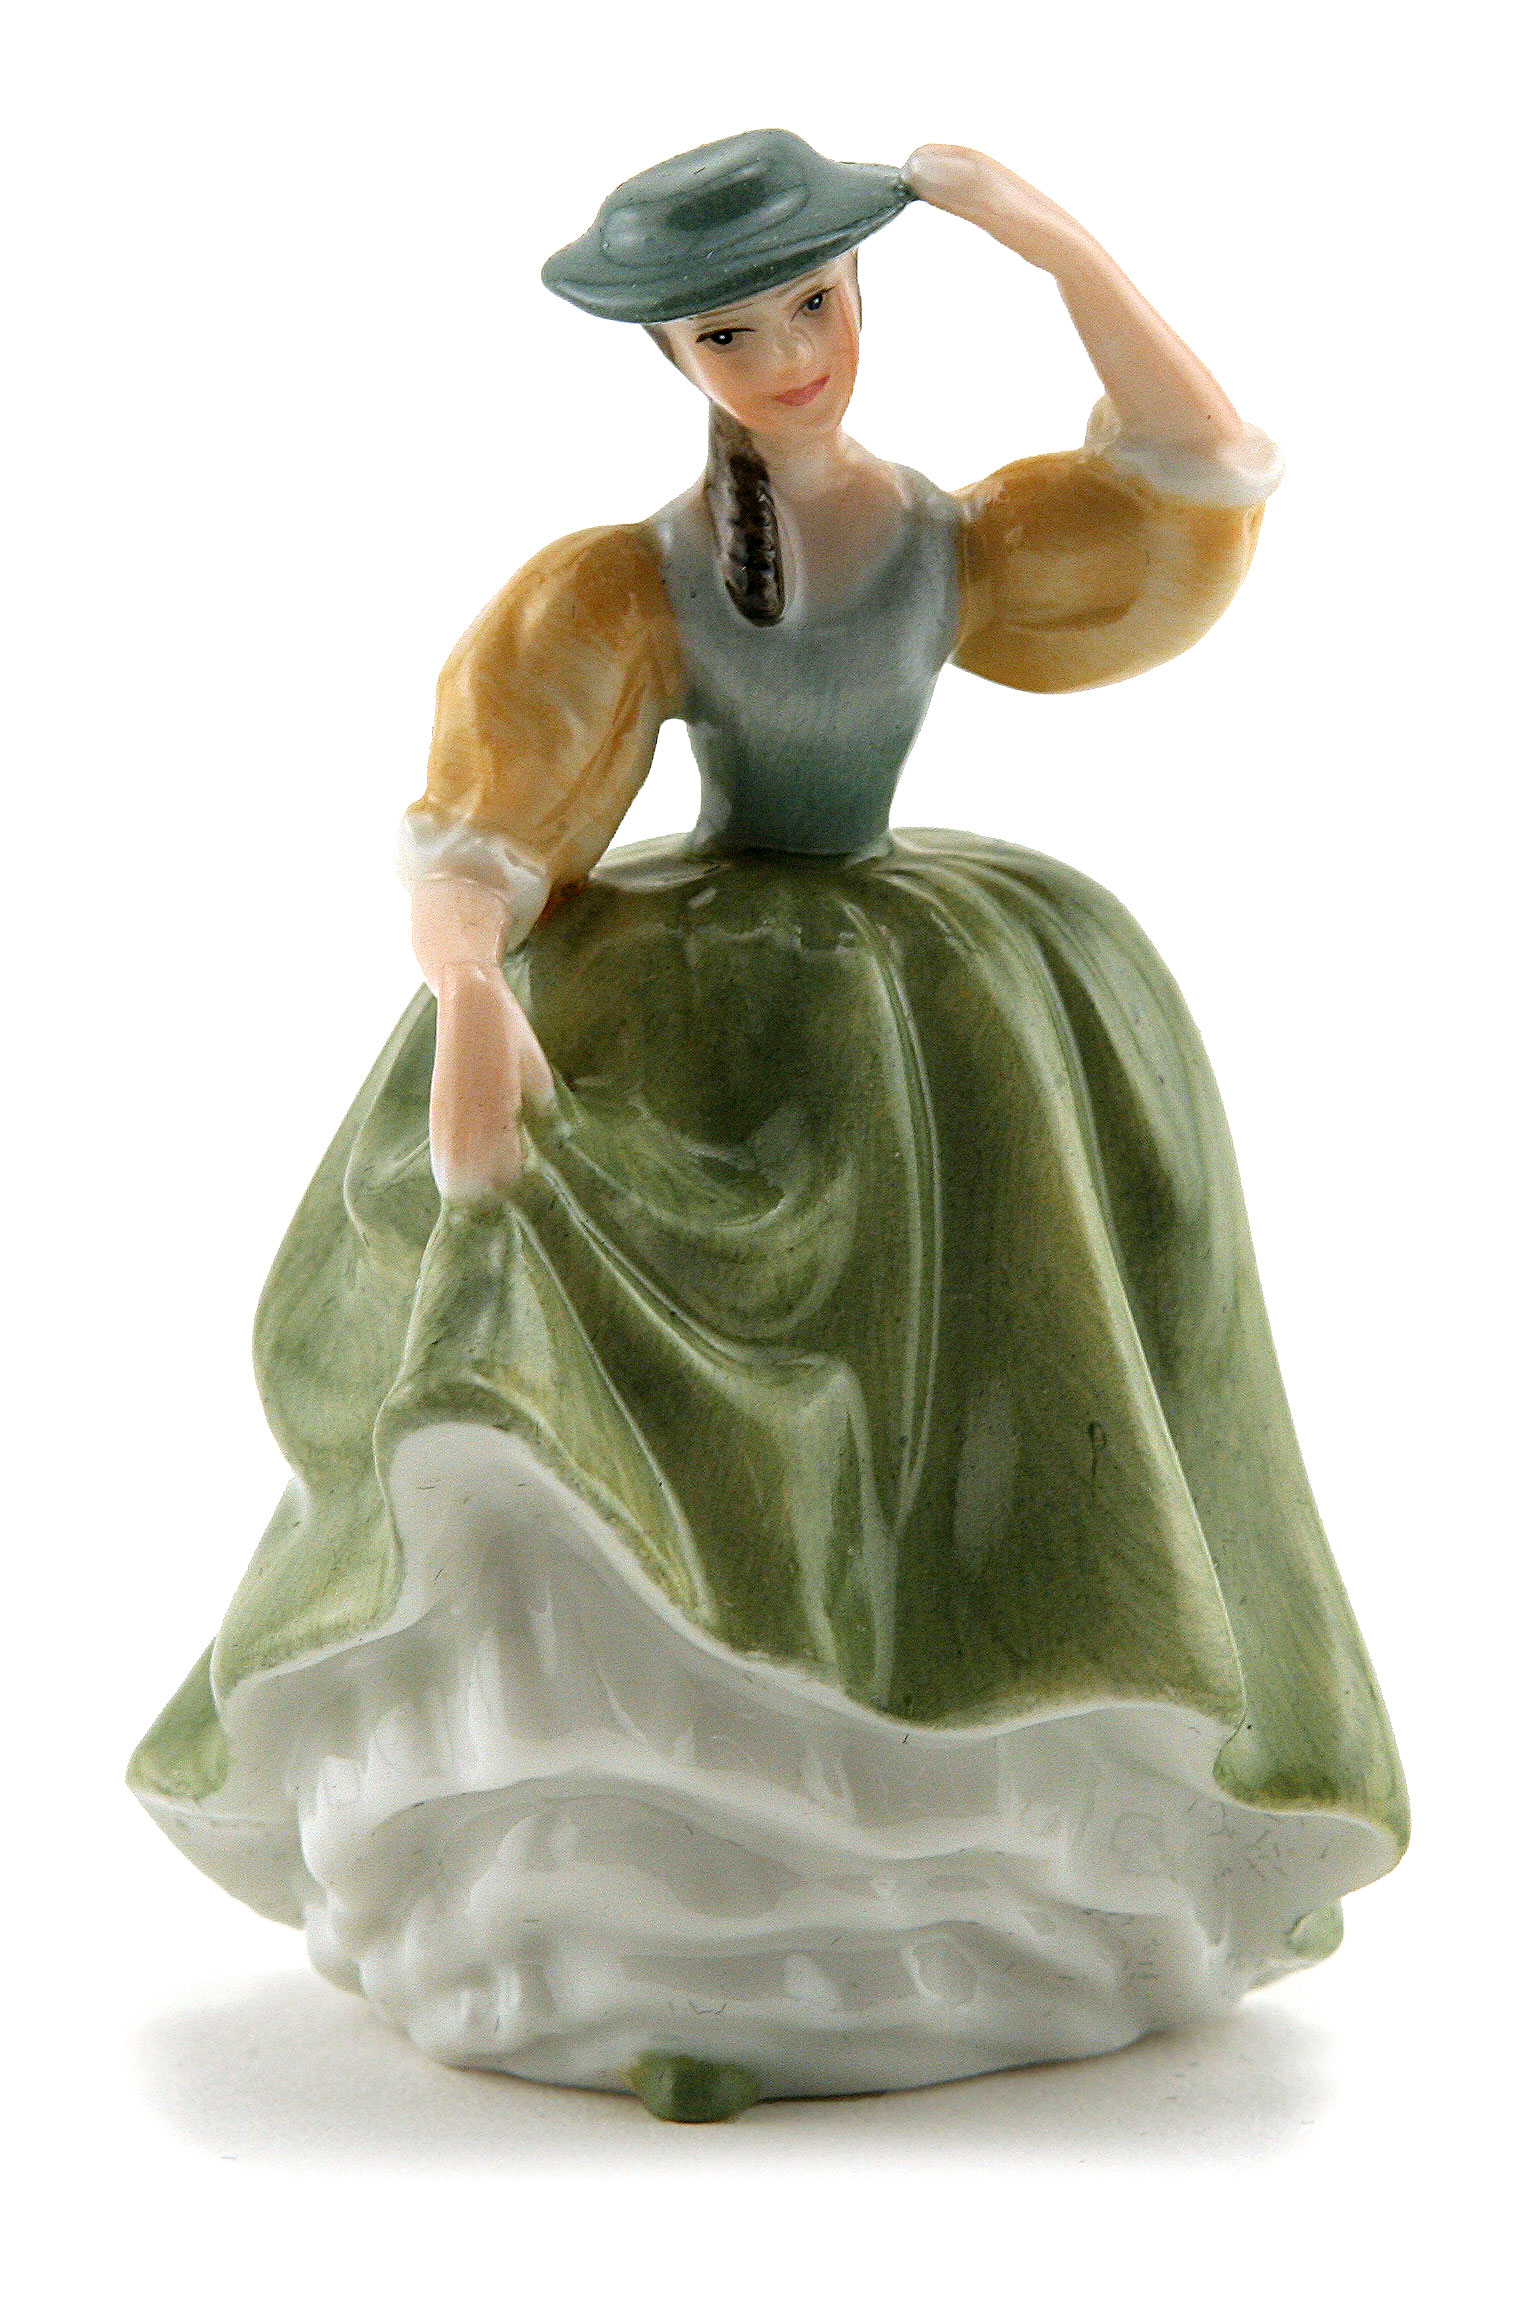 Buttercup M211 - Royal Doulton Figurine